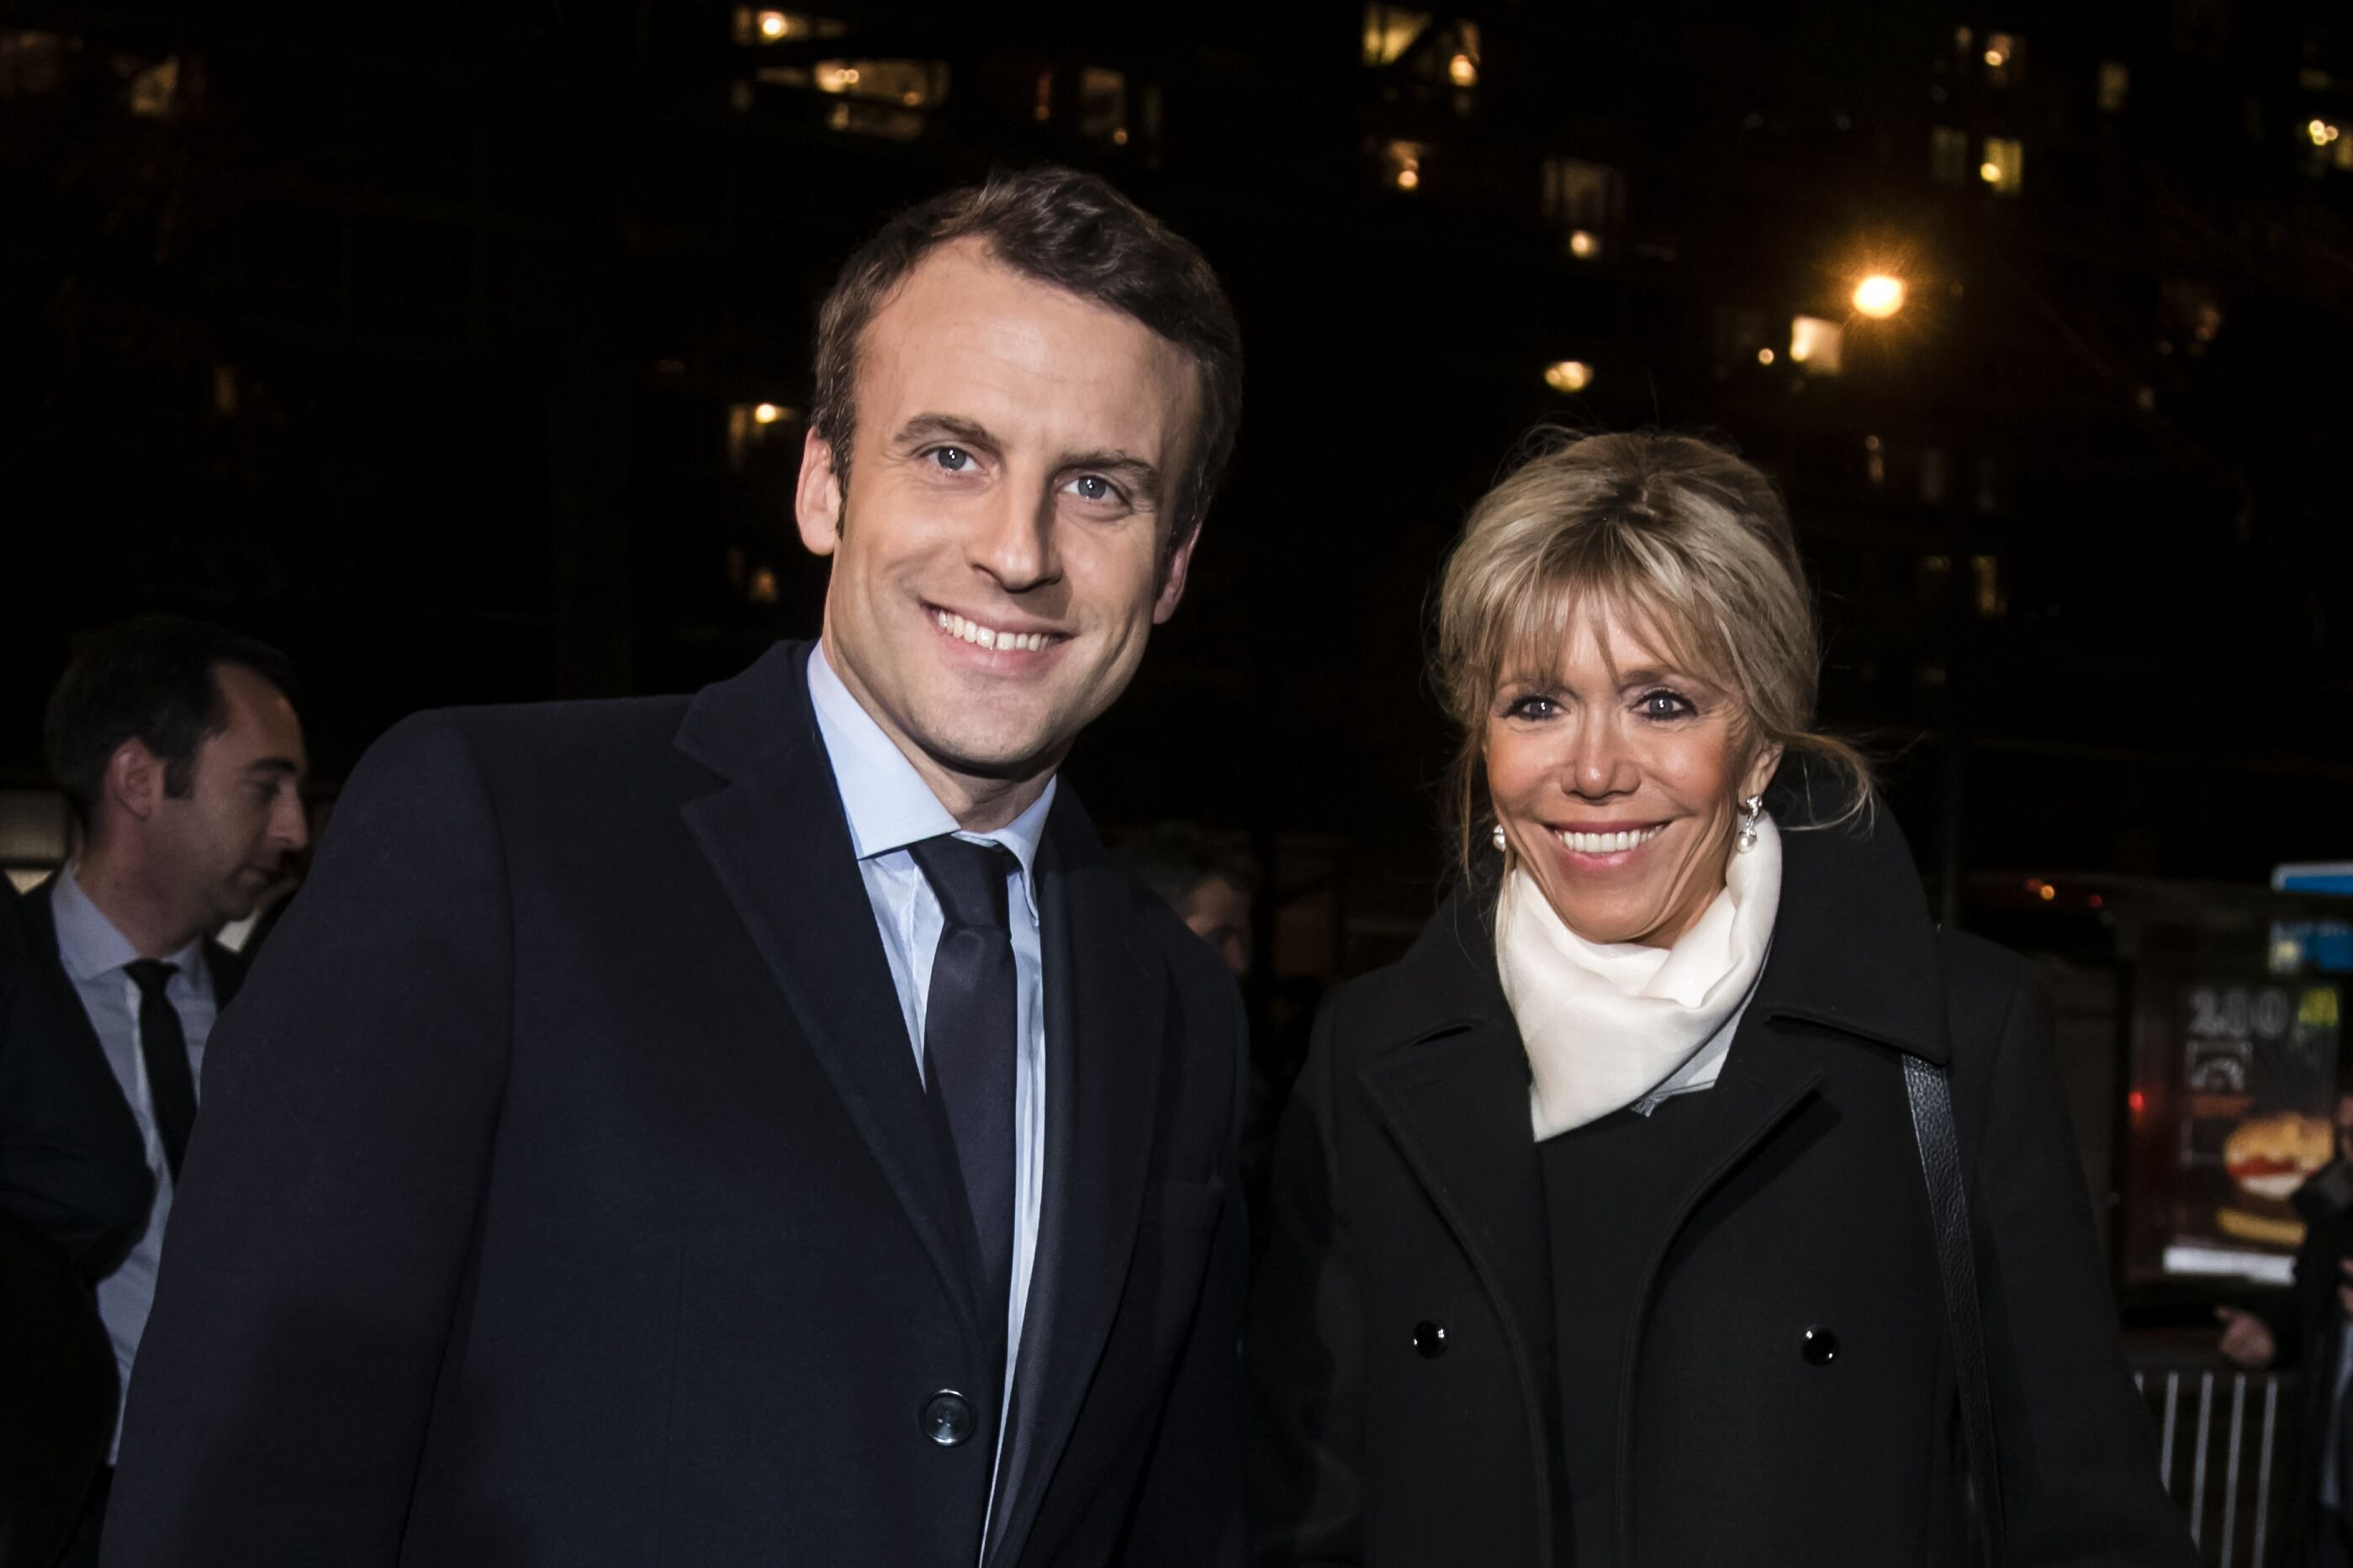 Emmanuel Macron et son épouse Brigitte Trogneux assistent au dîner traditionnel du Crif, à l'hôtel Pullman à Montparnasse à Paris, France. | Photo : Getty Images